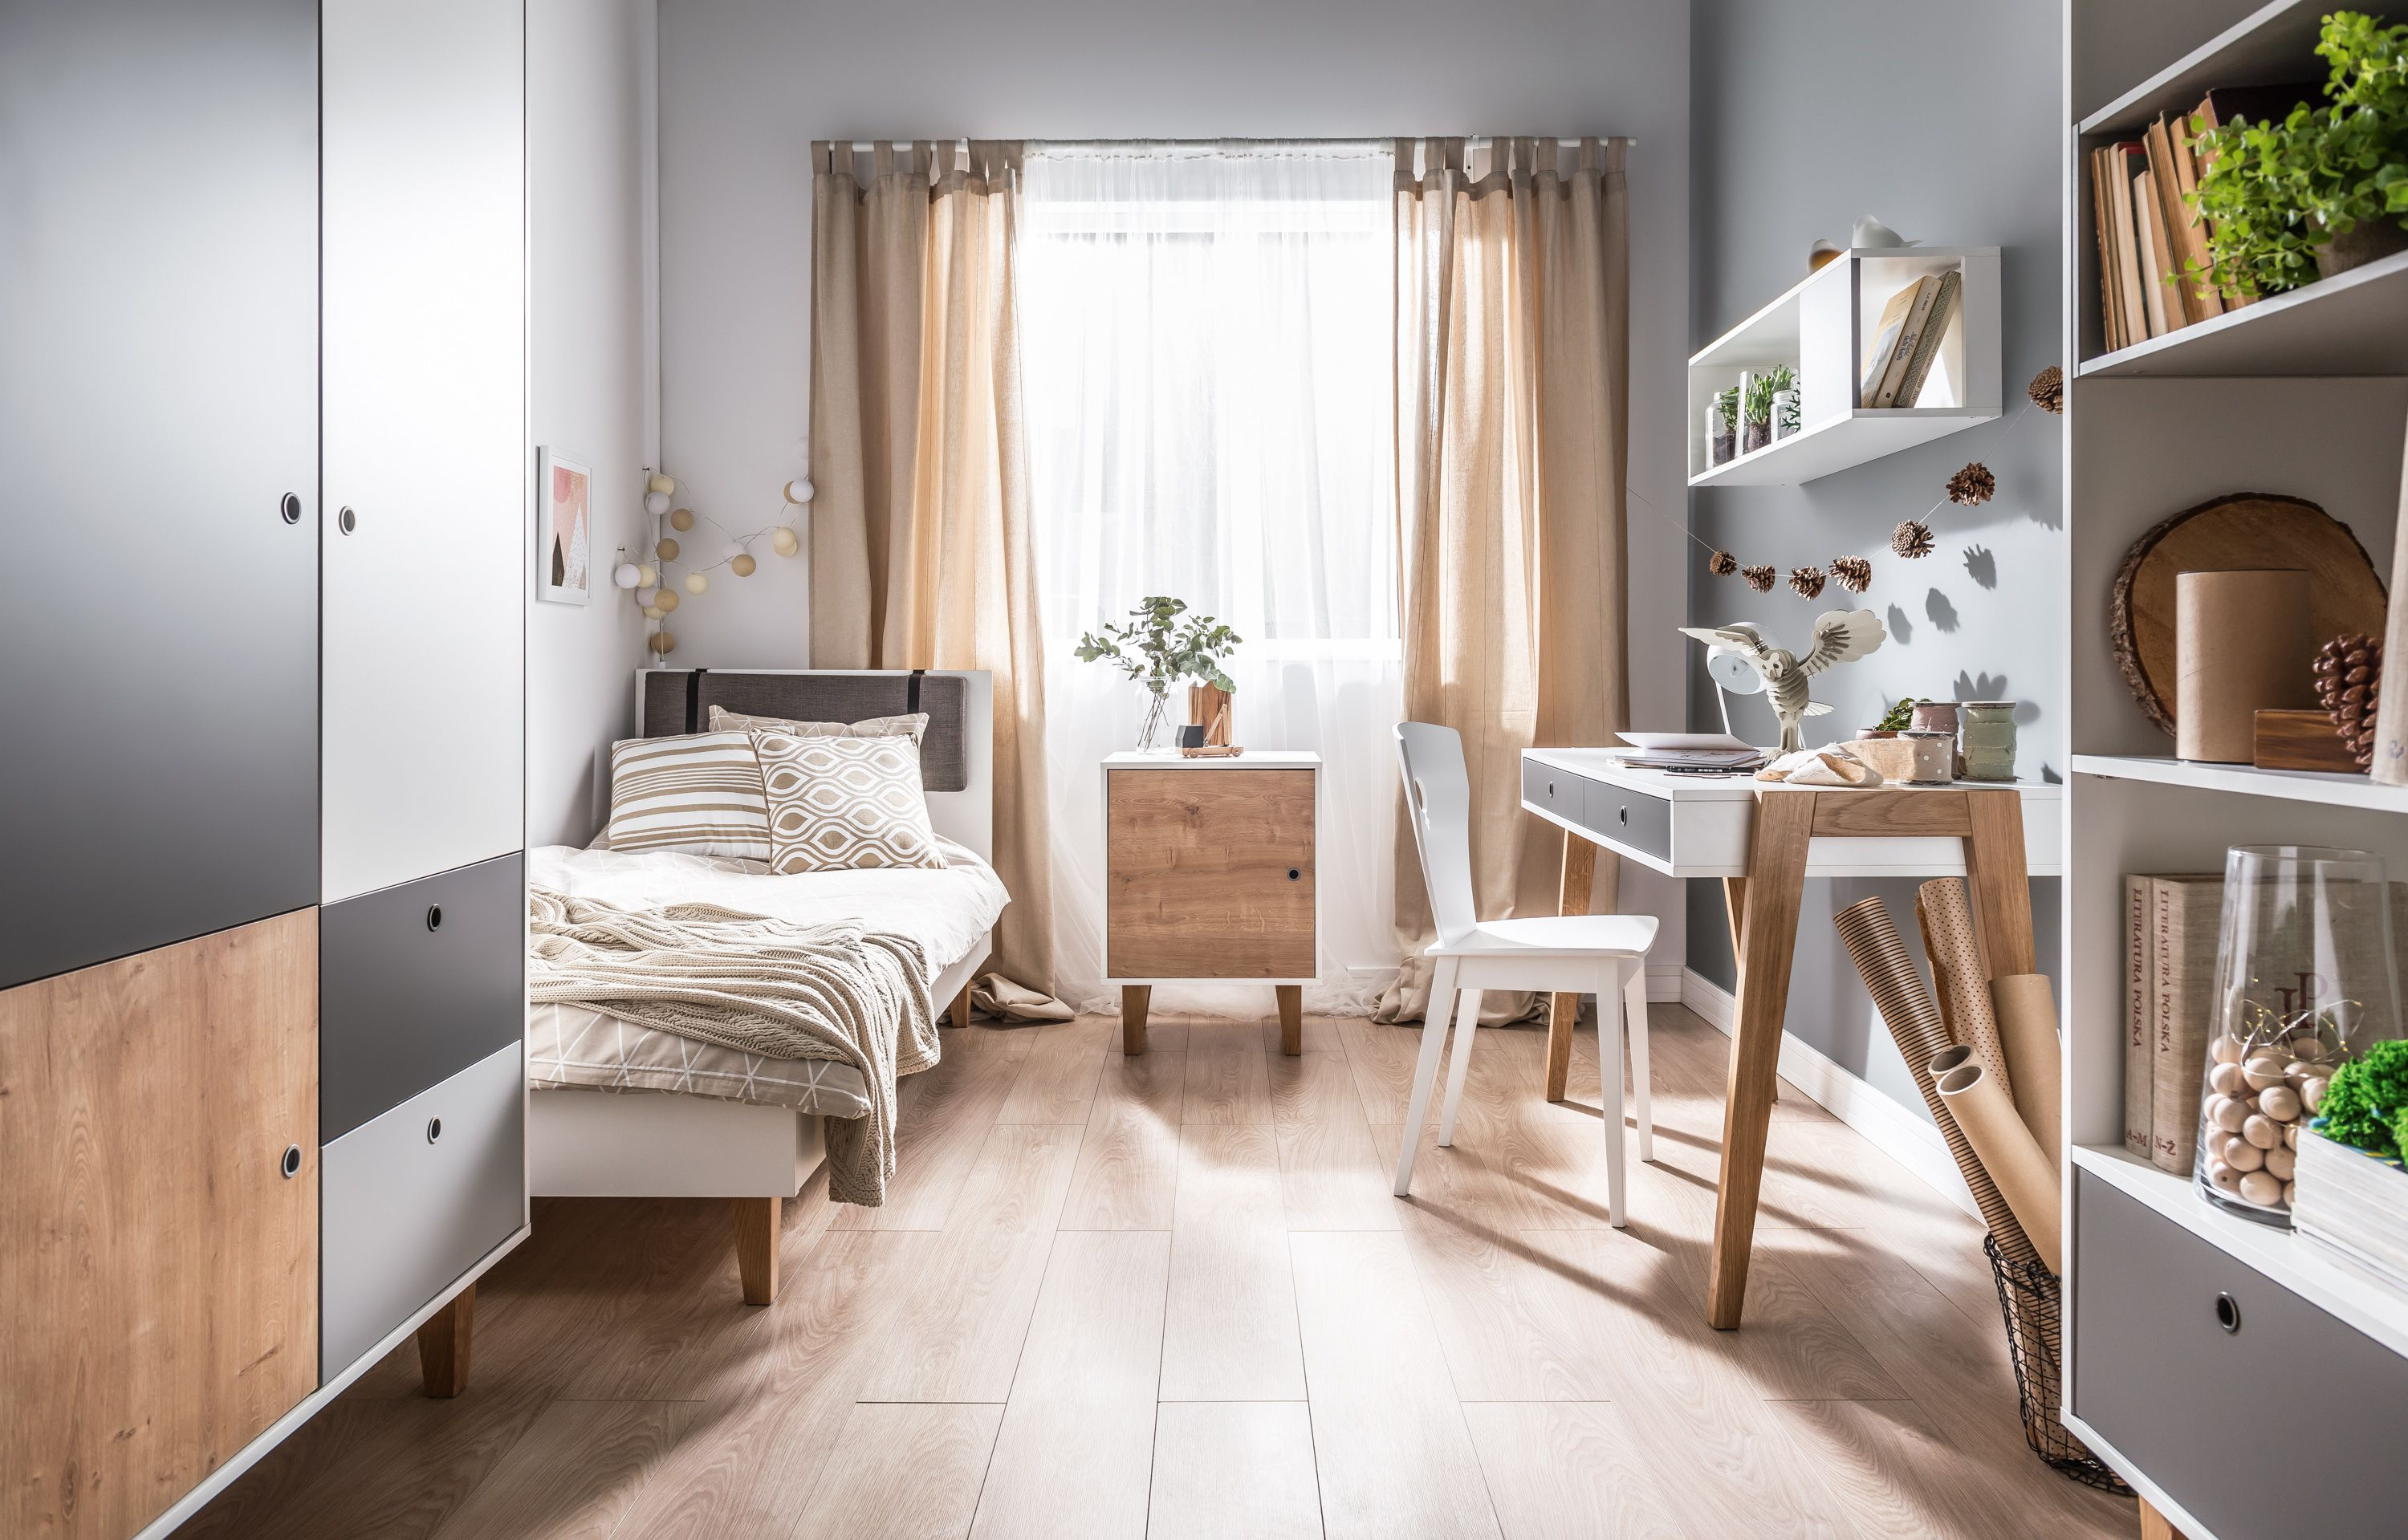 18 Small Bedroom Ideas To Fall In Love With Small Bedroom Decorating Ideas